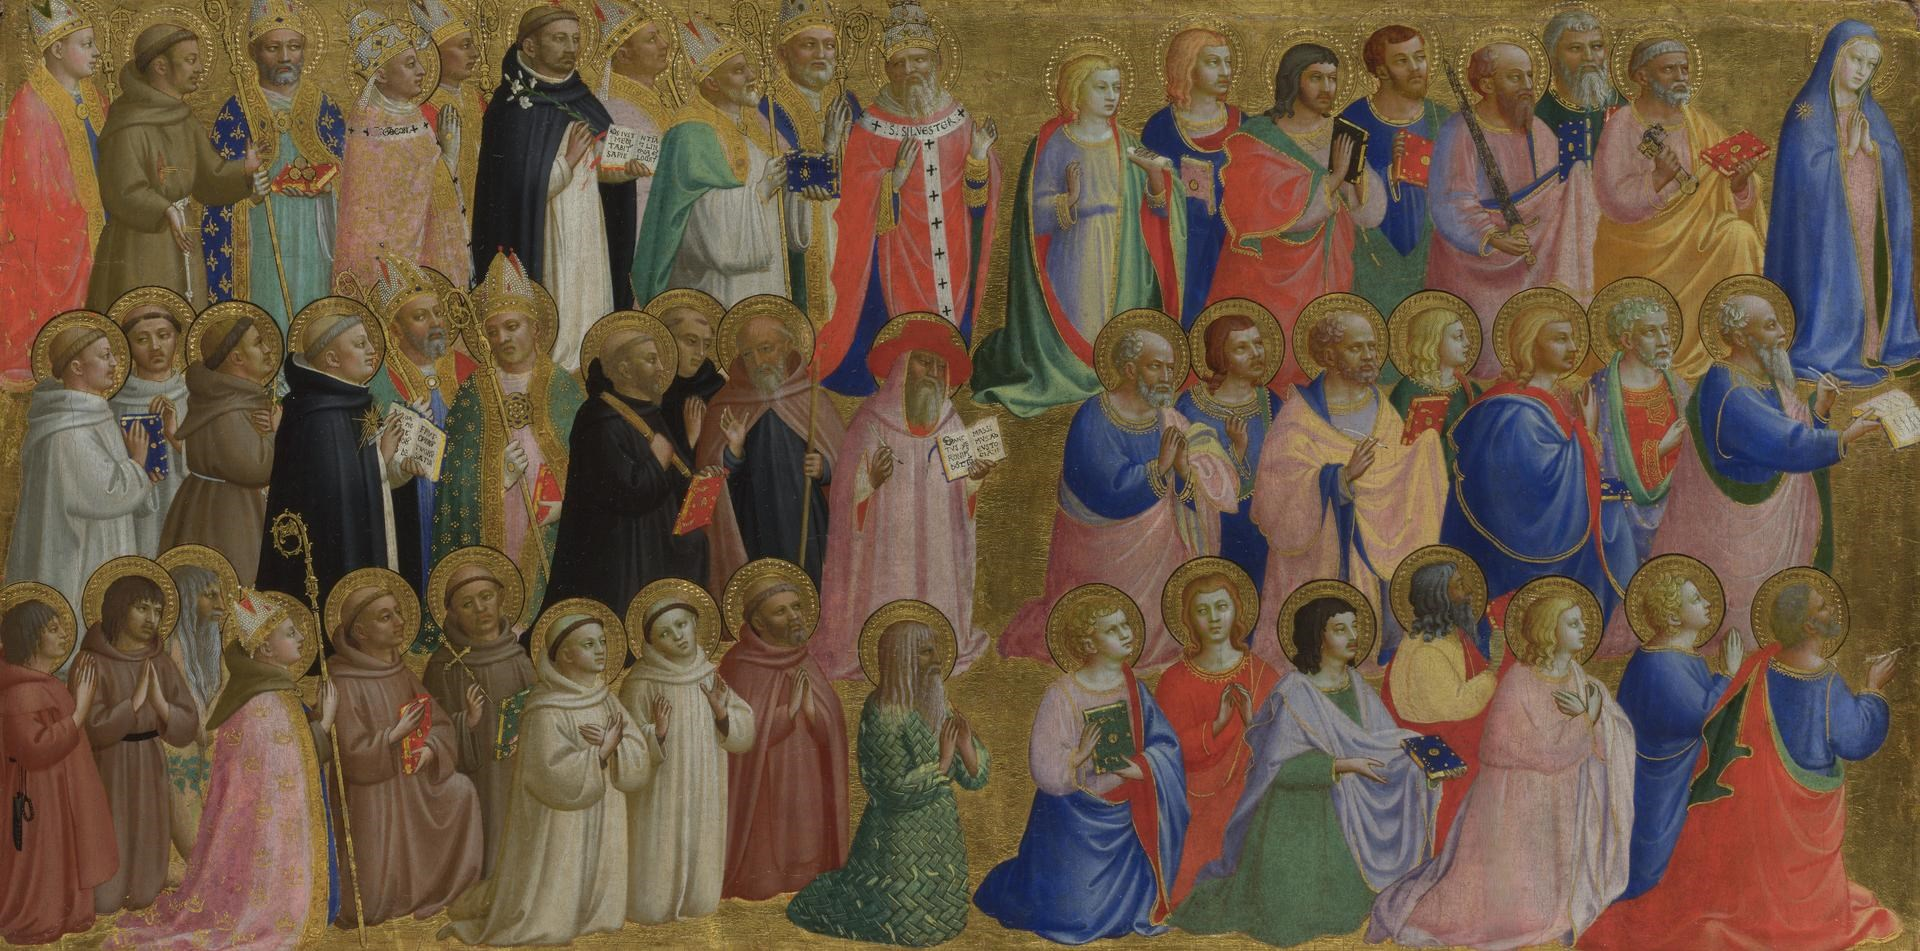 The Virgin Mary with the Apostles and Other Saints by Probably by Fra Angelico